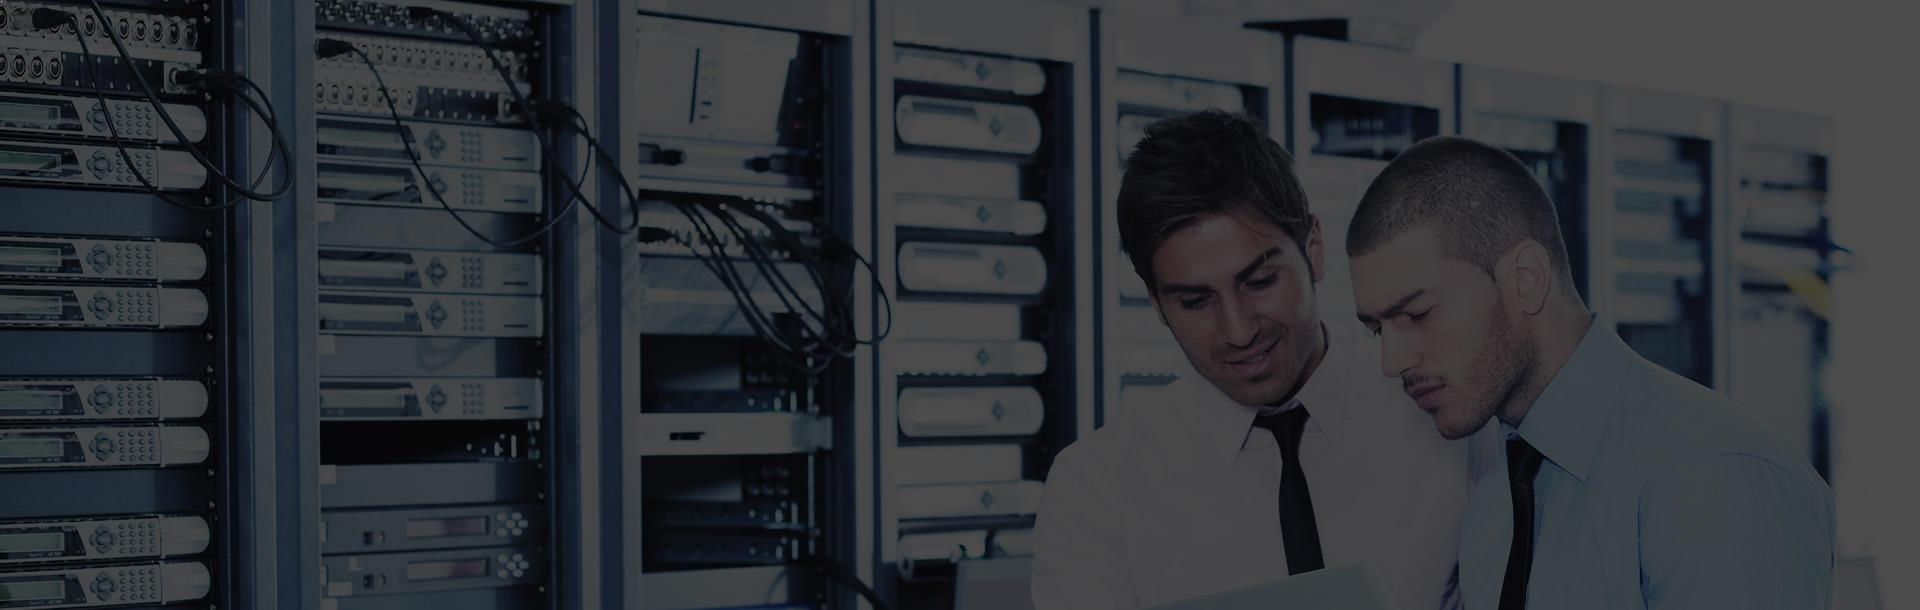 Offshore VPS & Dedicated Servers